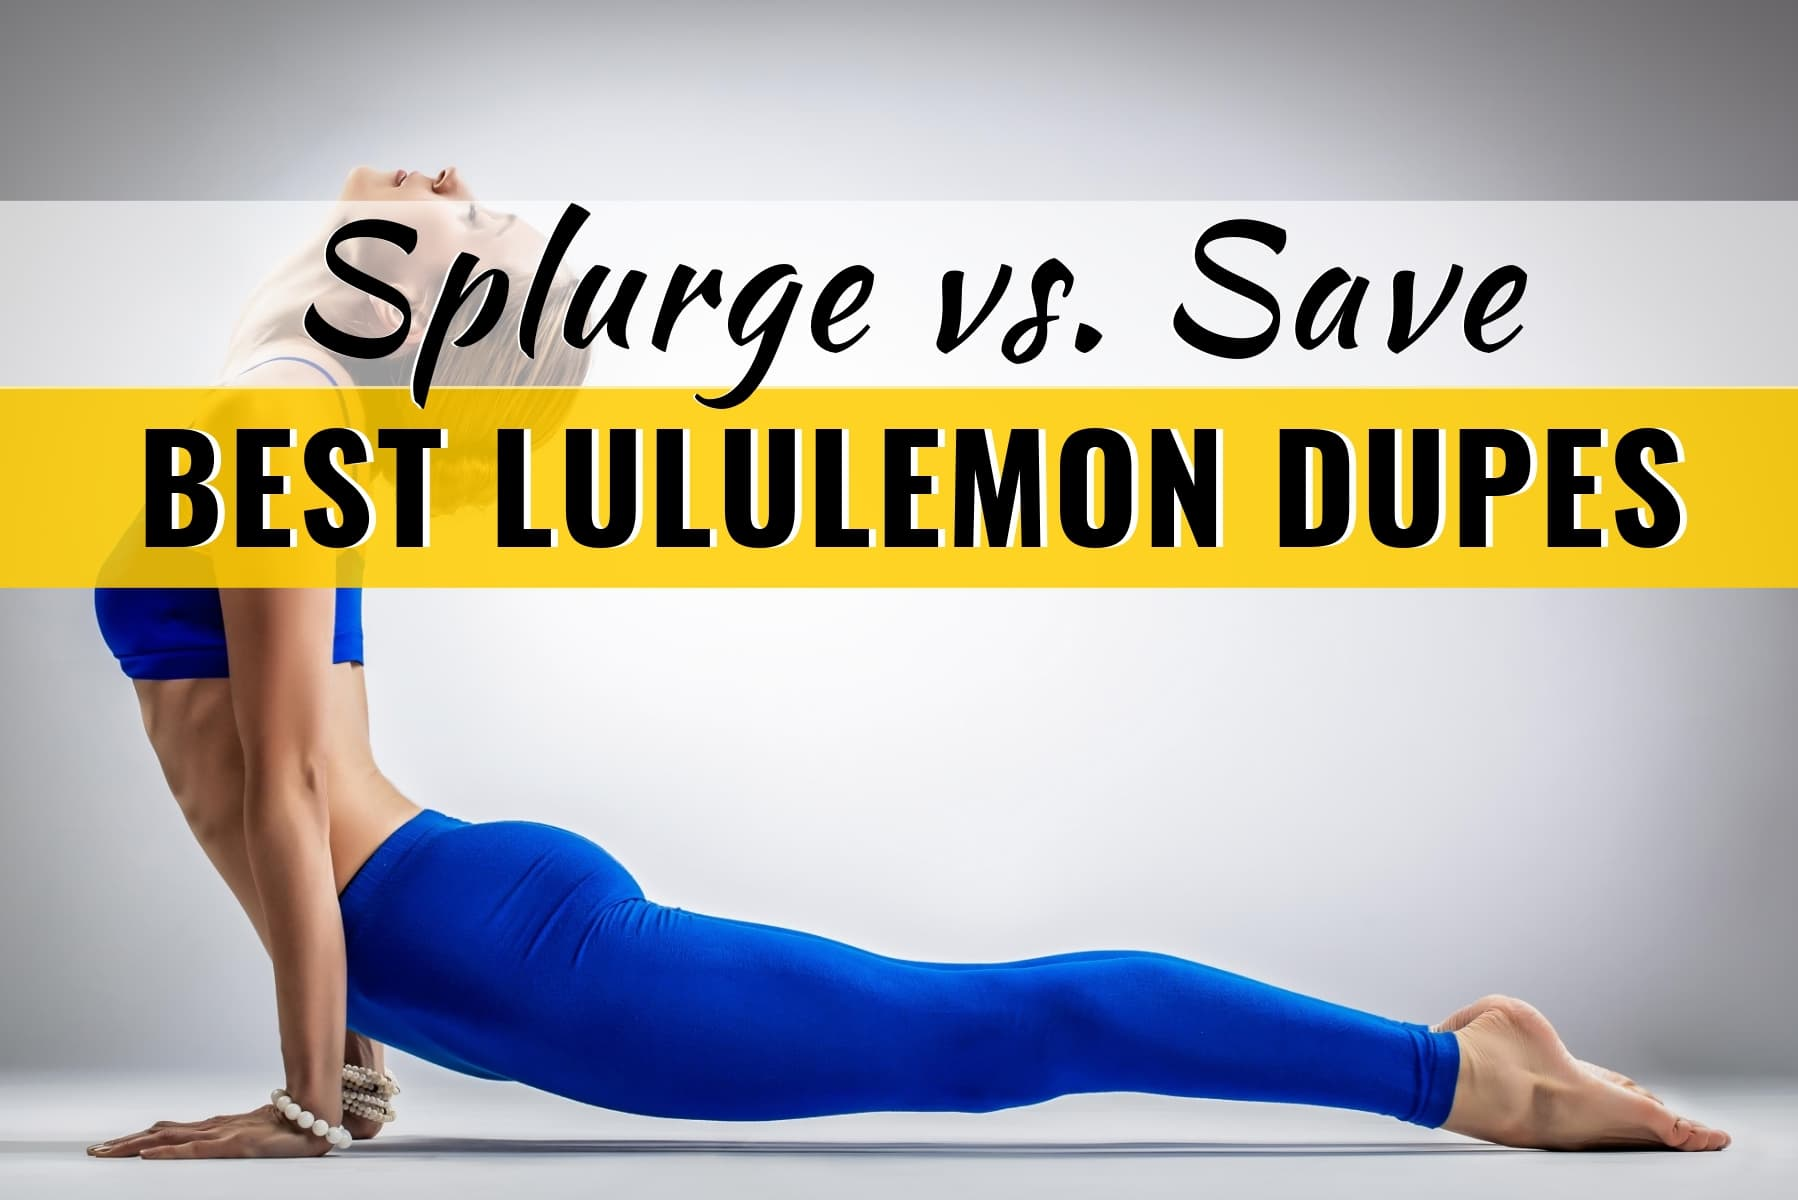 5213bff44c5bf 11 Best Lululemon Dupes | These Lululemon Dupes Are The Real Deal!